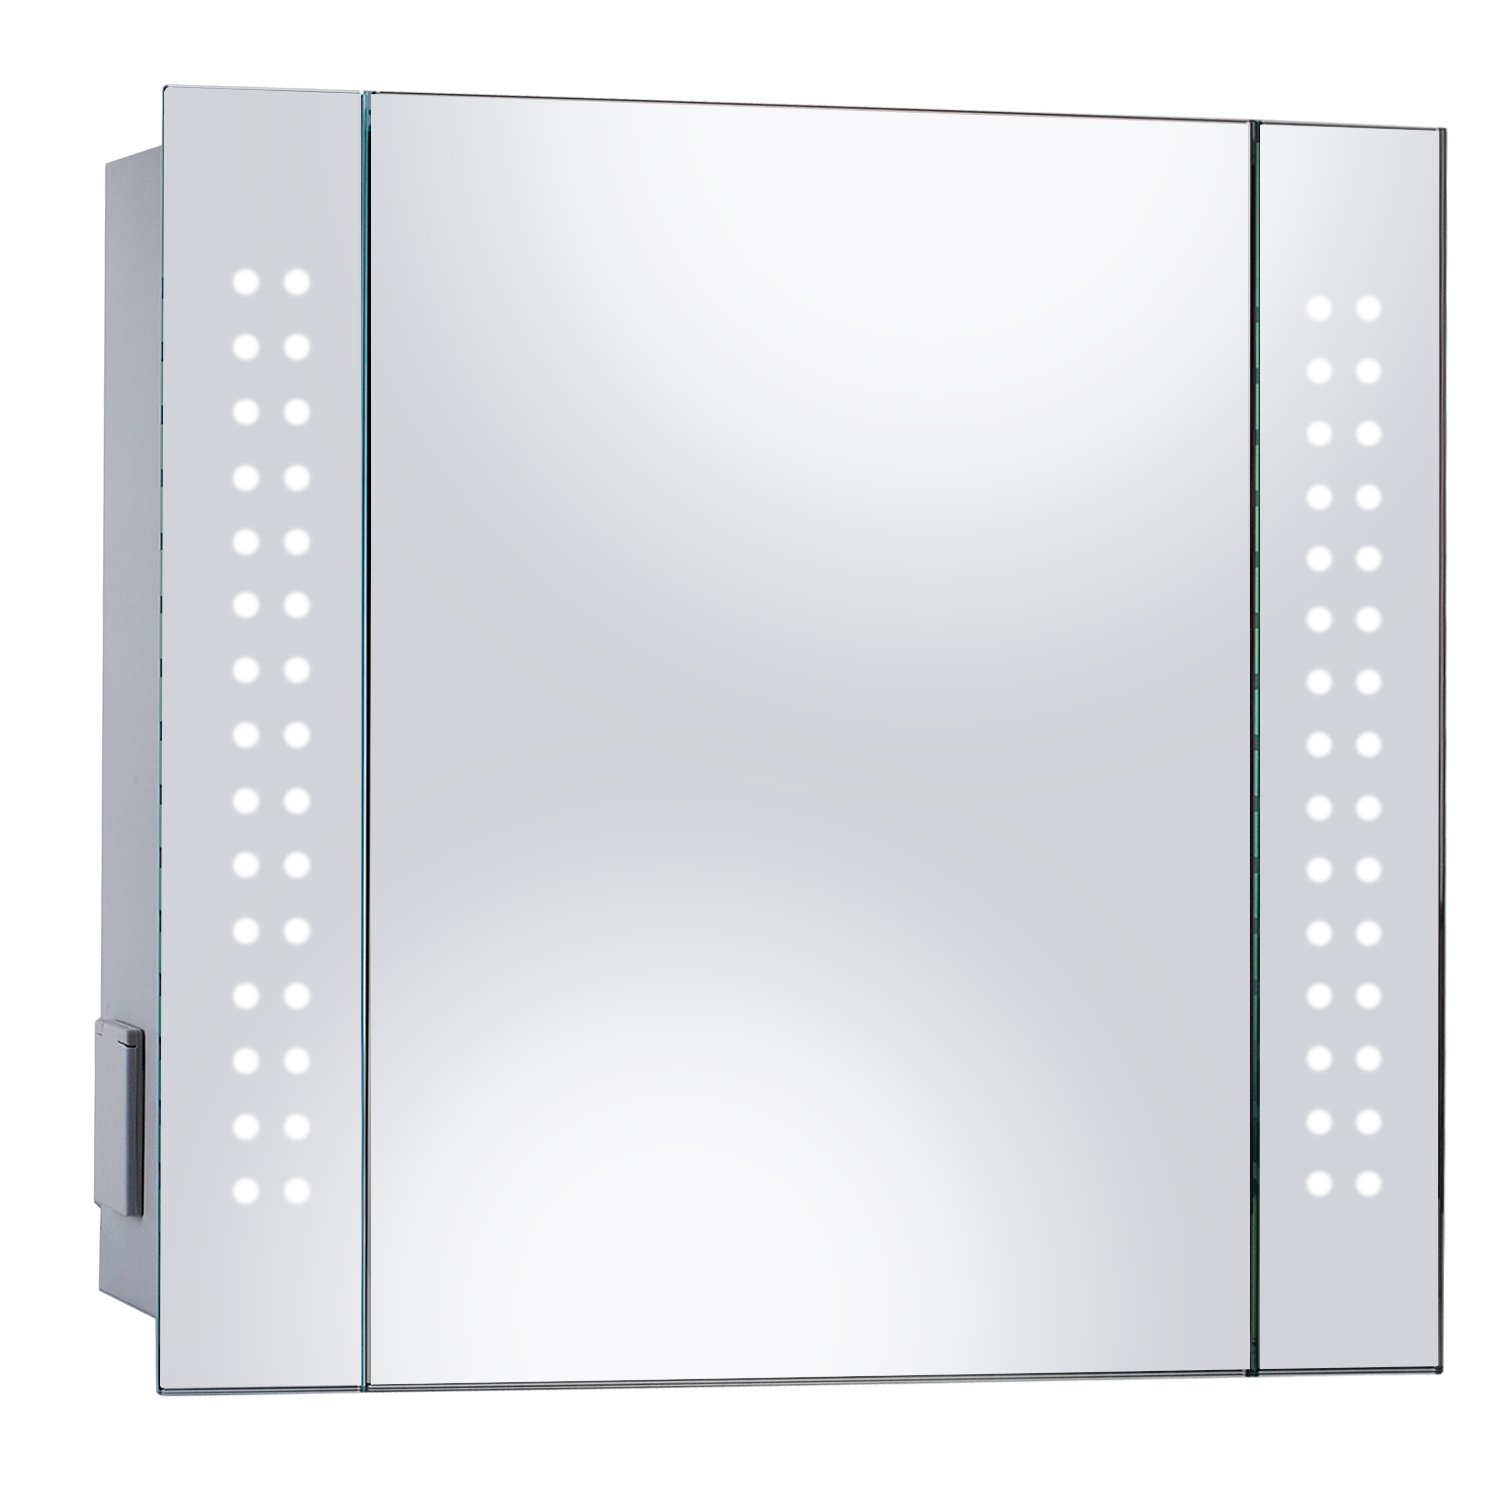 Bathroom Mirrors Amazon Uk Bathroom Mirror with Shelf Amazon co